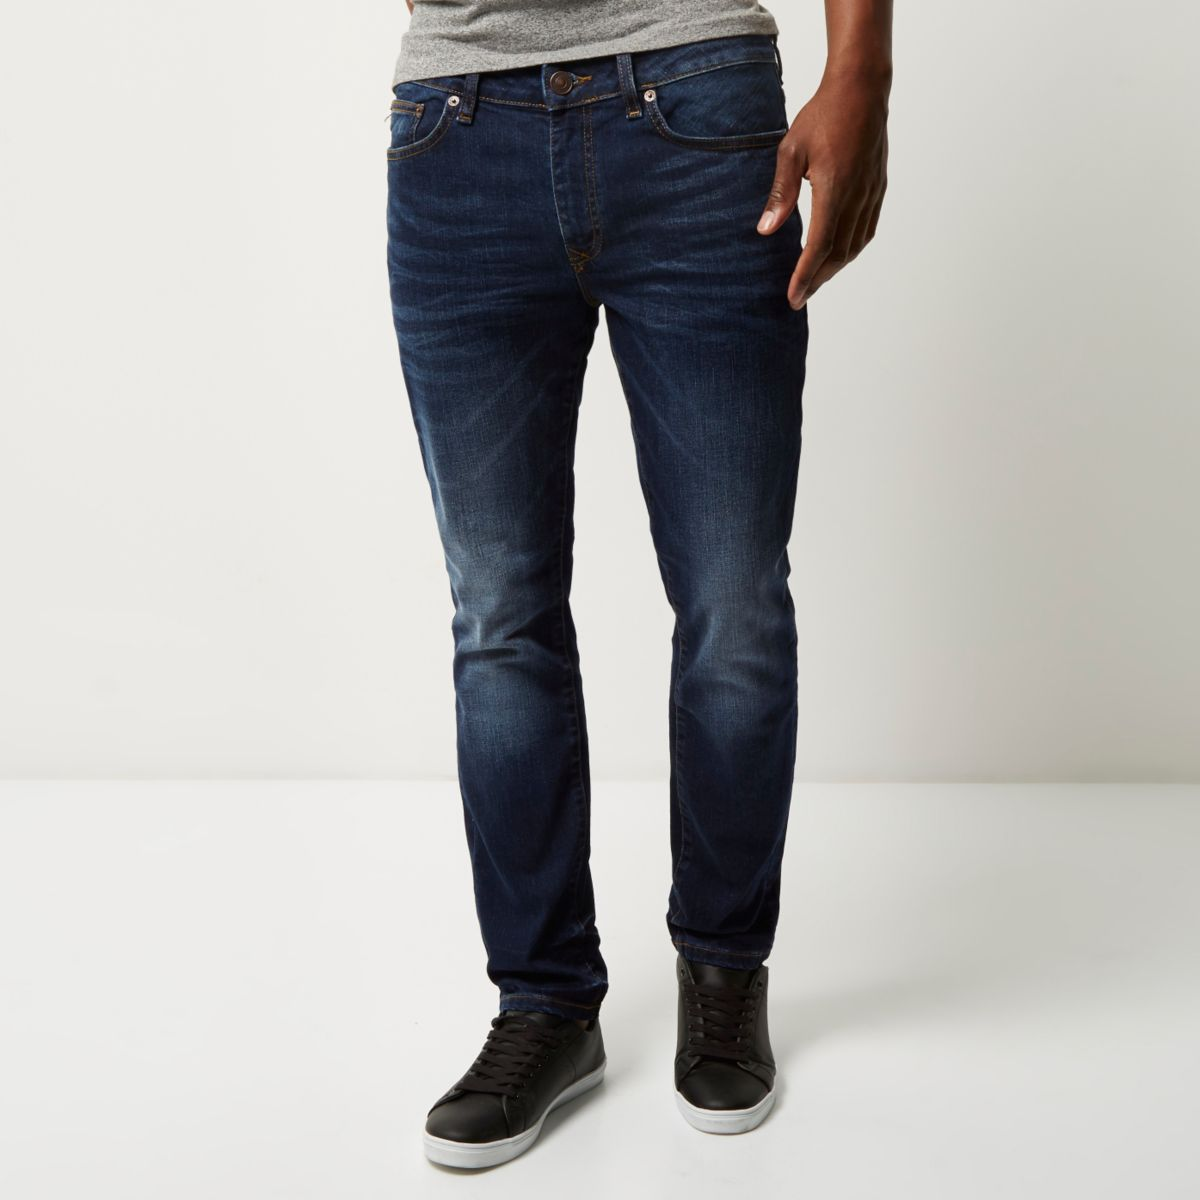 dark blue wash dylan slim fit jeans slim jeans jeans men